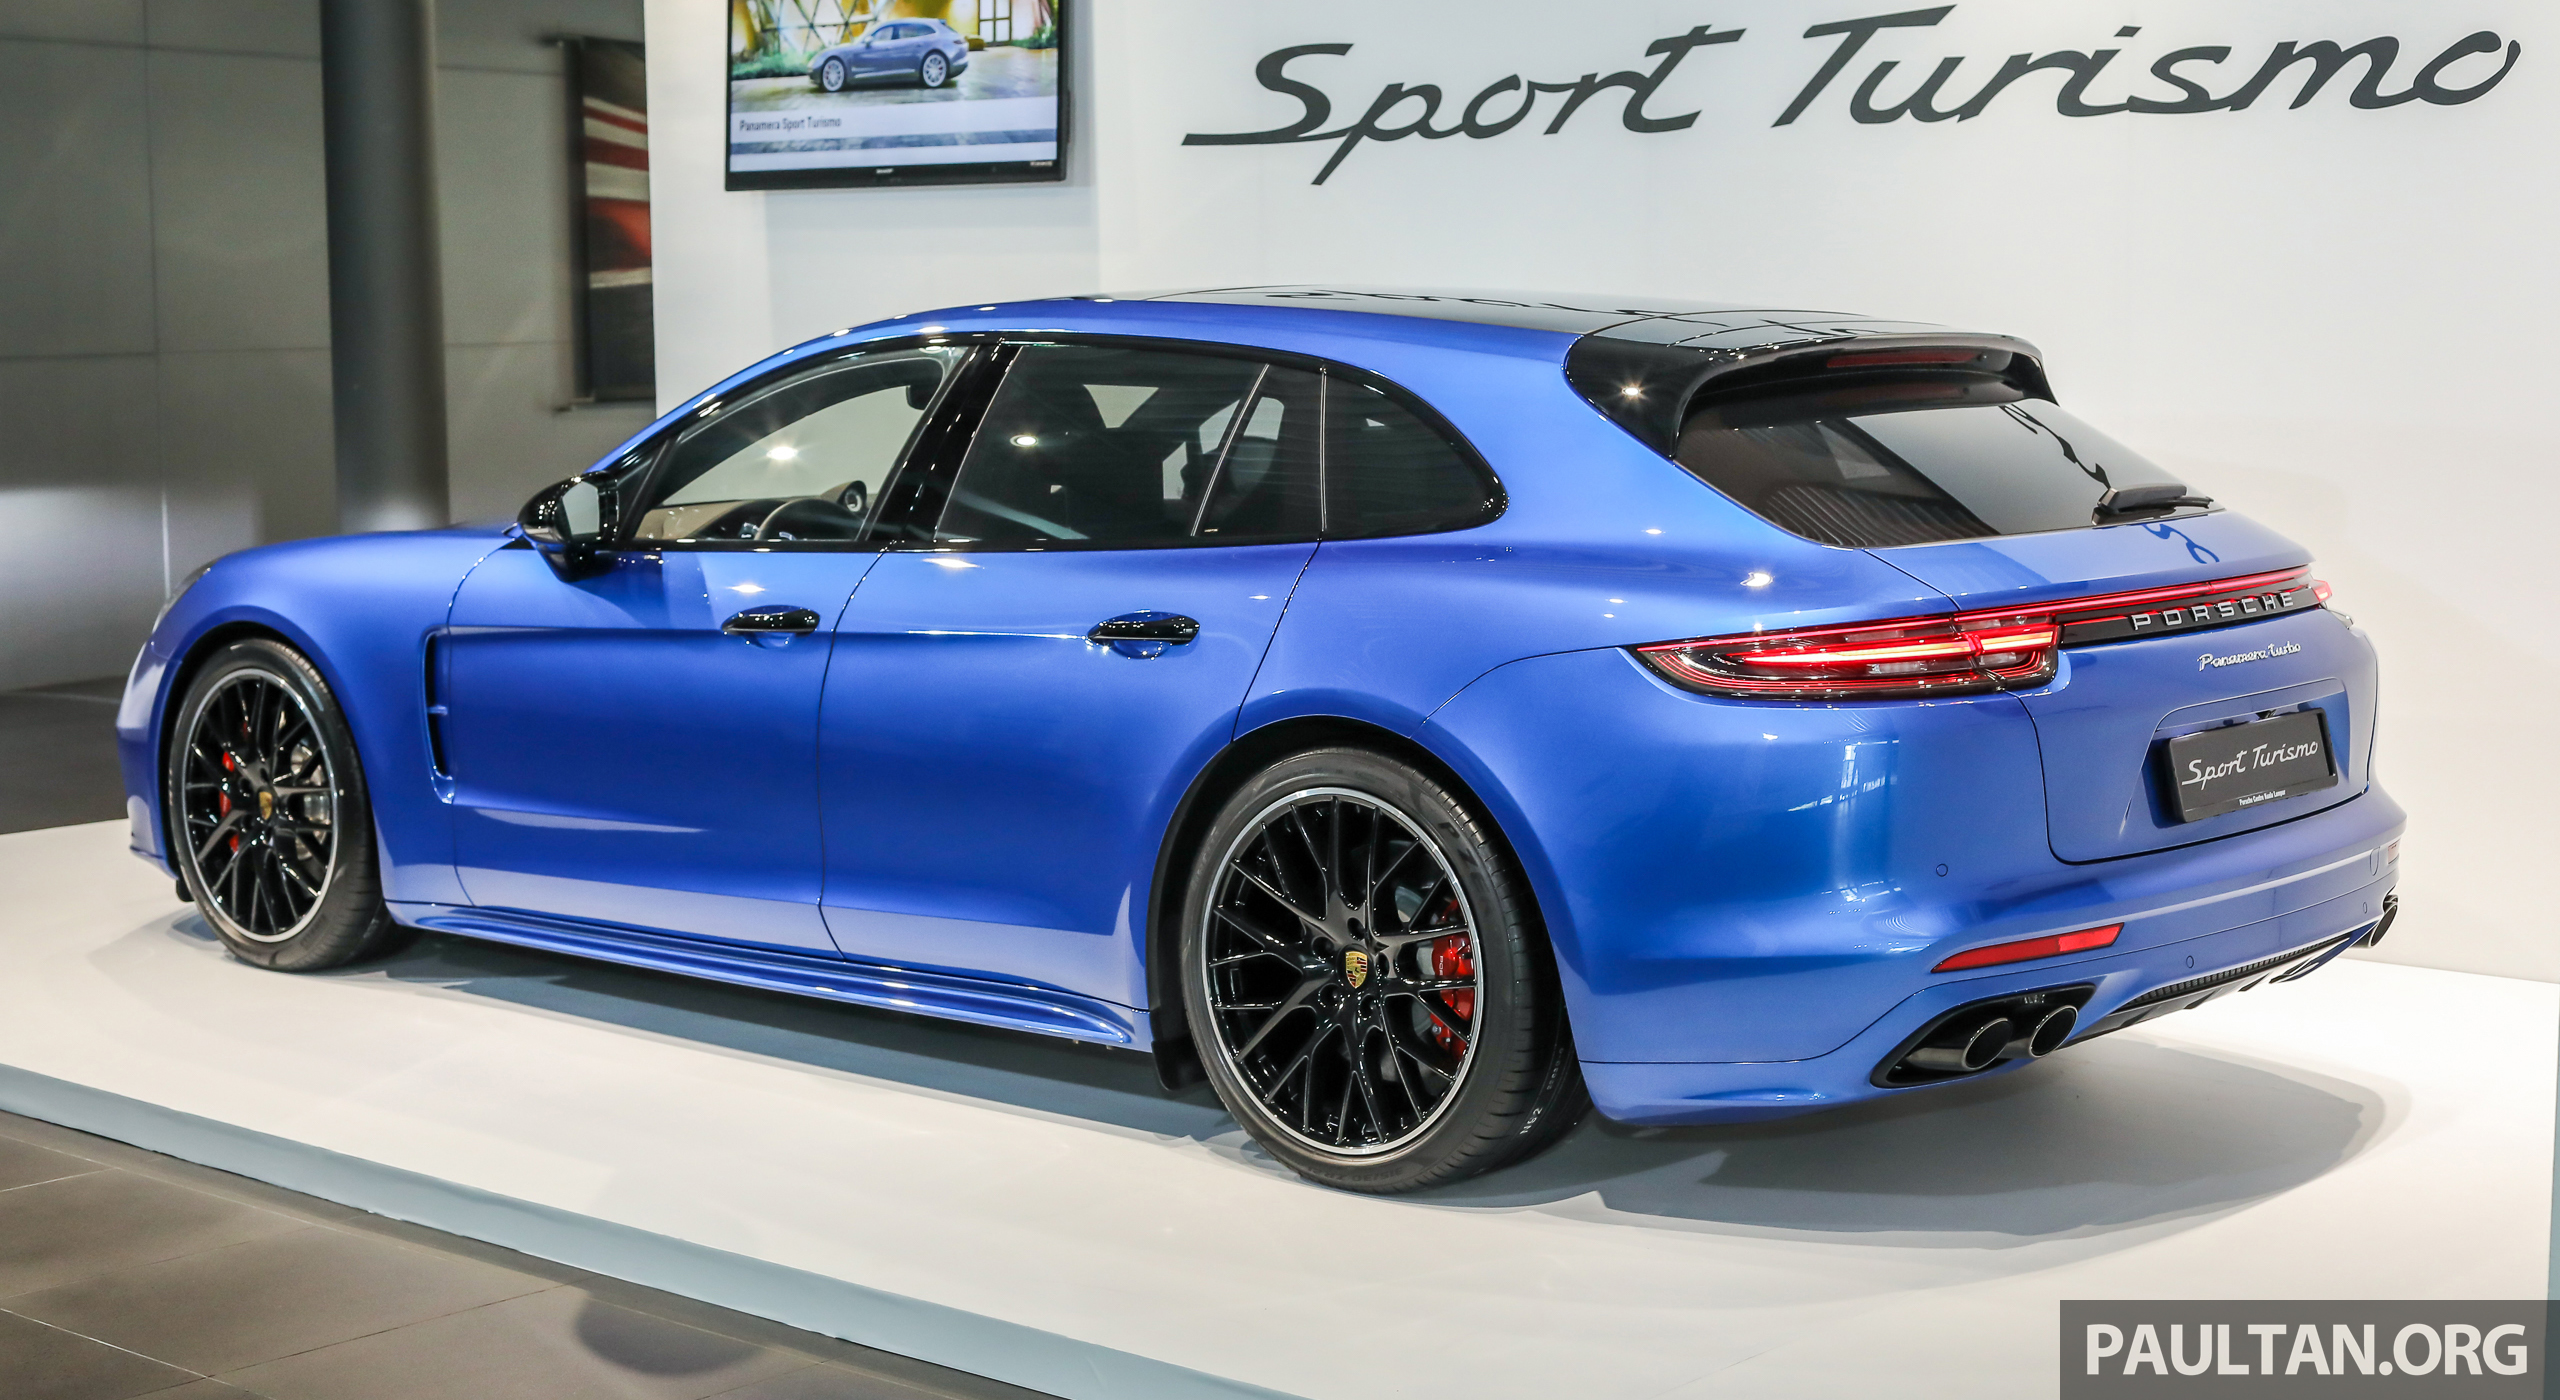 porsche panamera sport turismo previewed in m 39 sia 4 4 e hybrid and turbo models launch in 2018. Black Bedroom Furniture Sets. Home Design Ideas